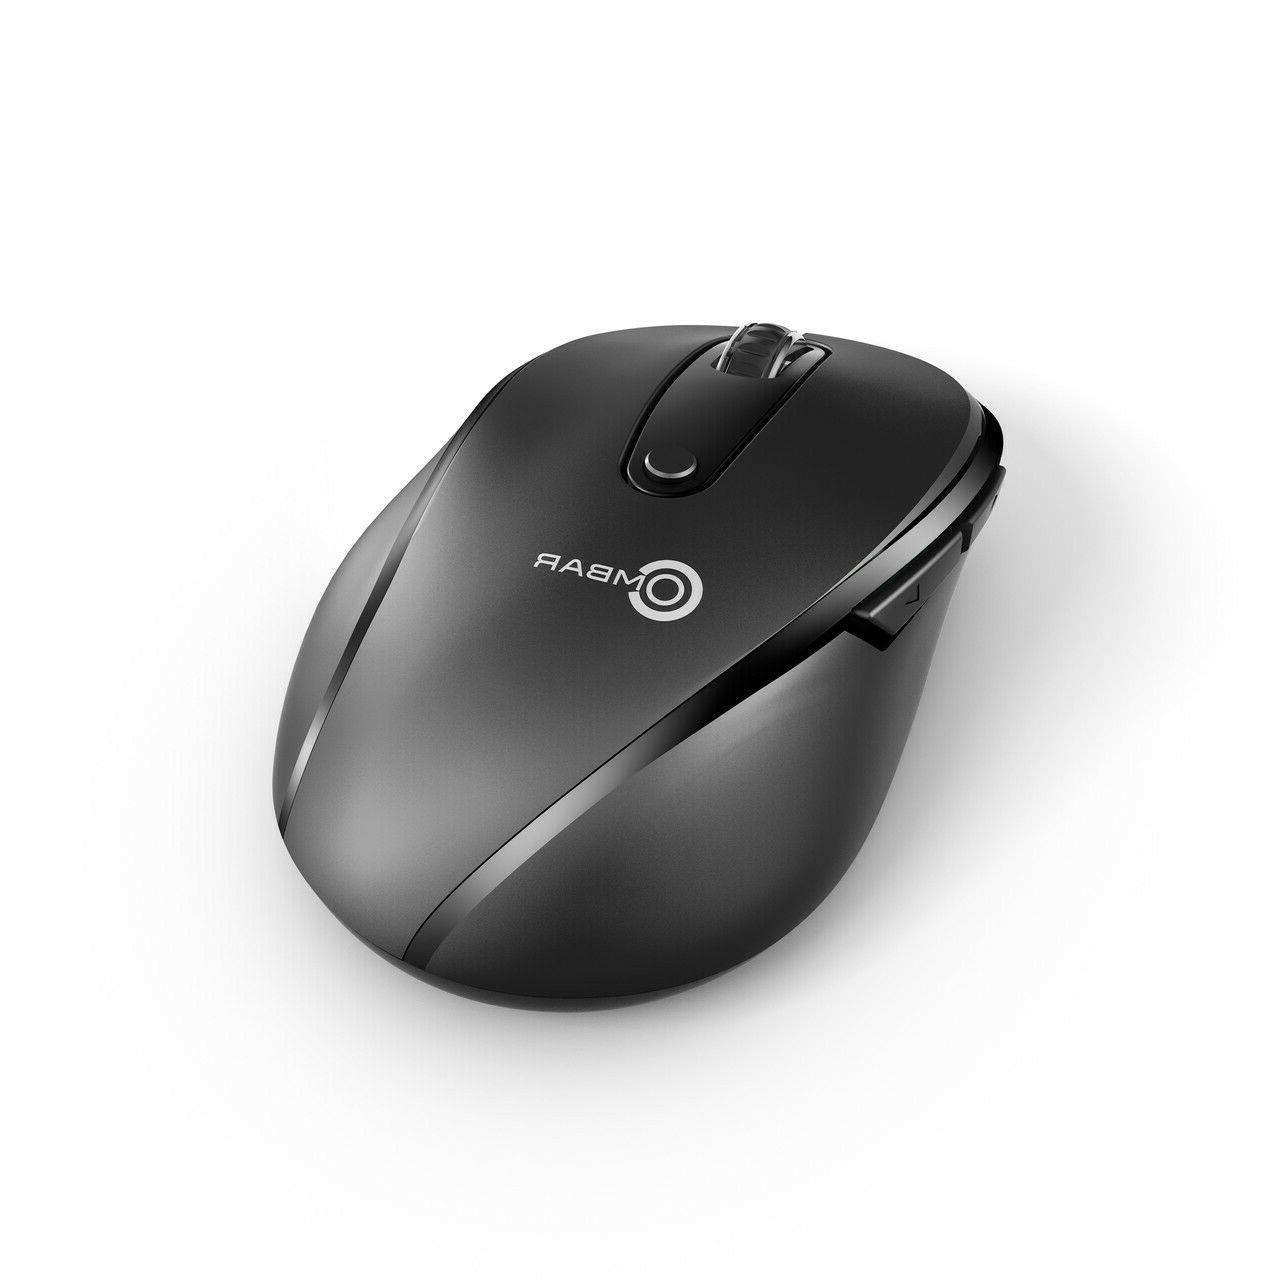 2.4GHZ Buttons Wireless Mouse for OS Tablets